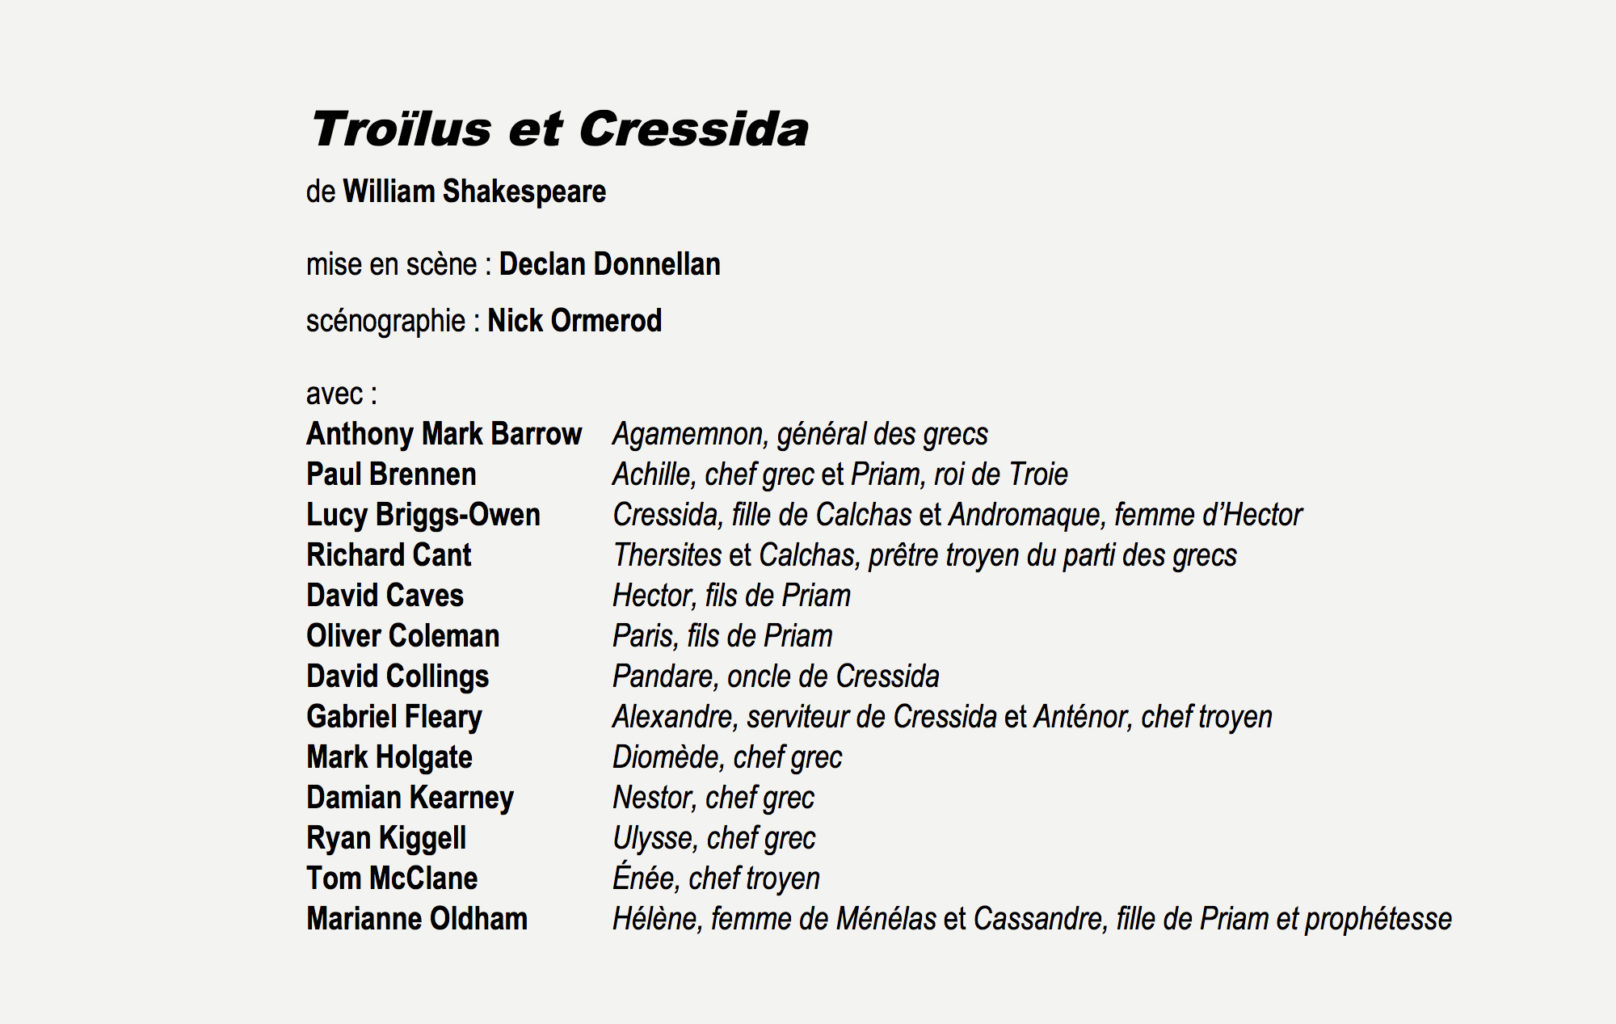 The French Les Gemeaux programme for Cheek by Jowl's 2008 production of Troilus and Cressida